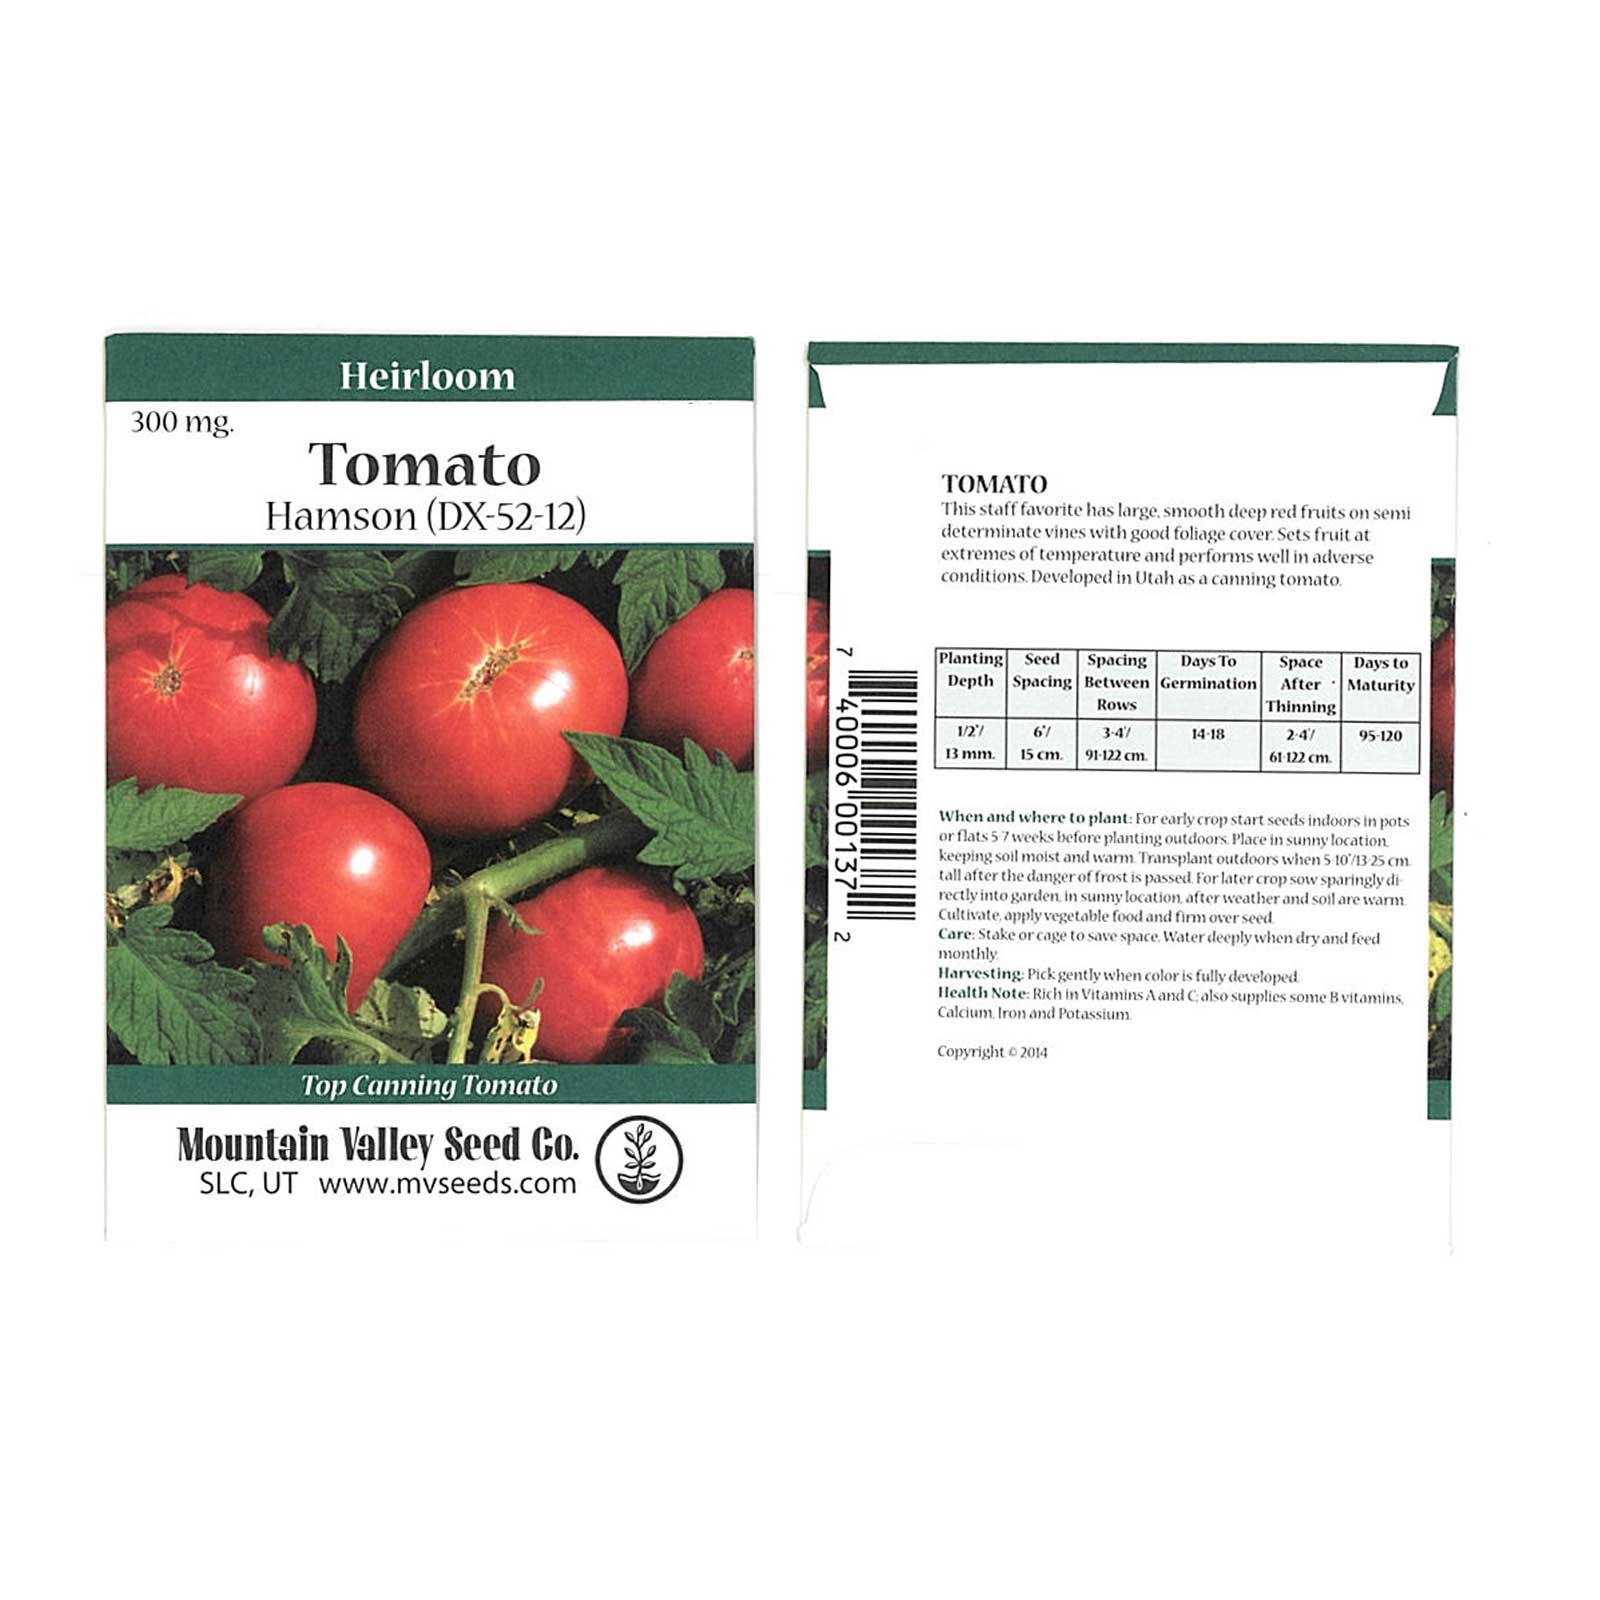 Tomato Garden Seeds - Hamson (DX-52-12) - 300 mg Packet - Non-GMO, Heirloom, Vegetable Gardening Seed